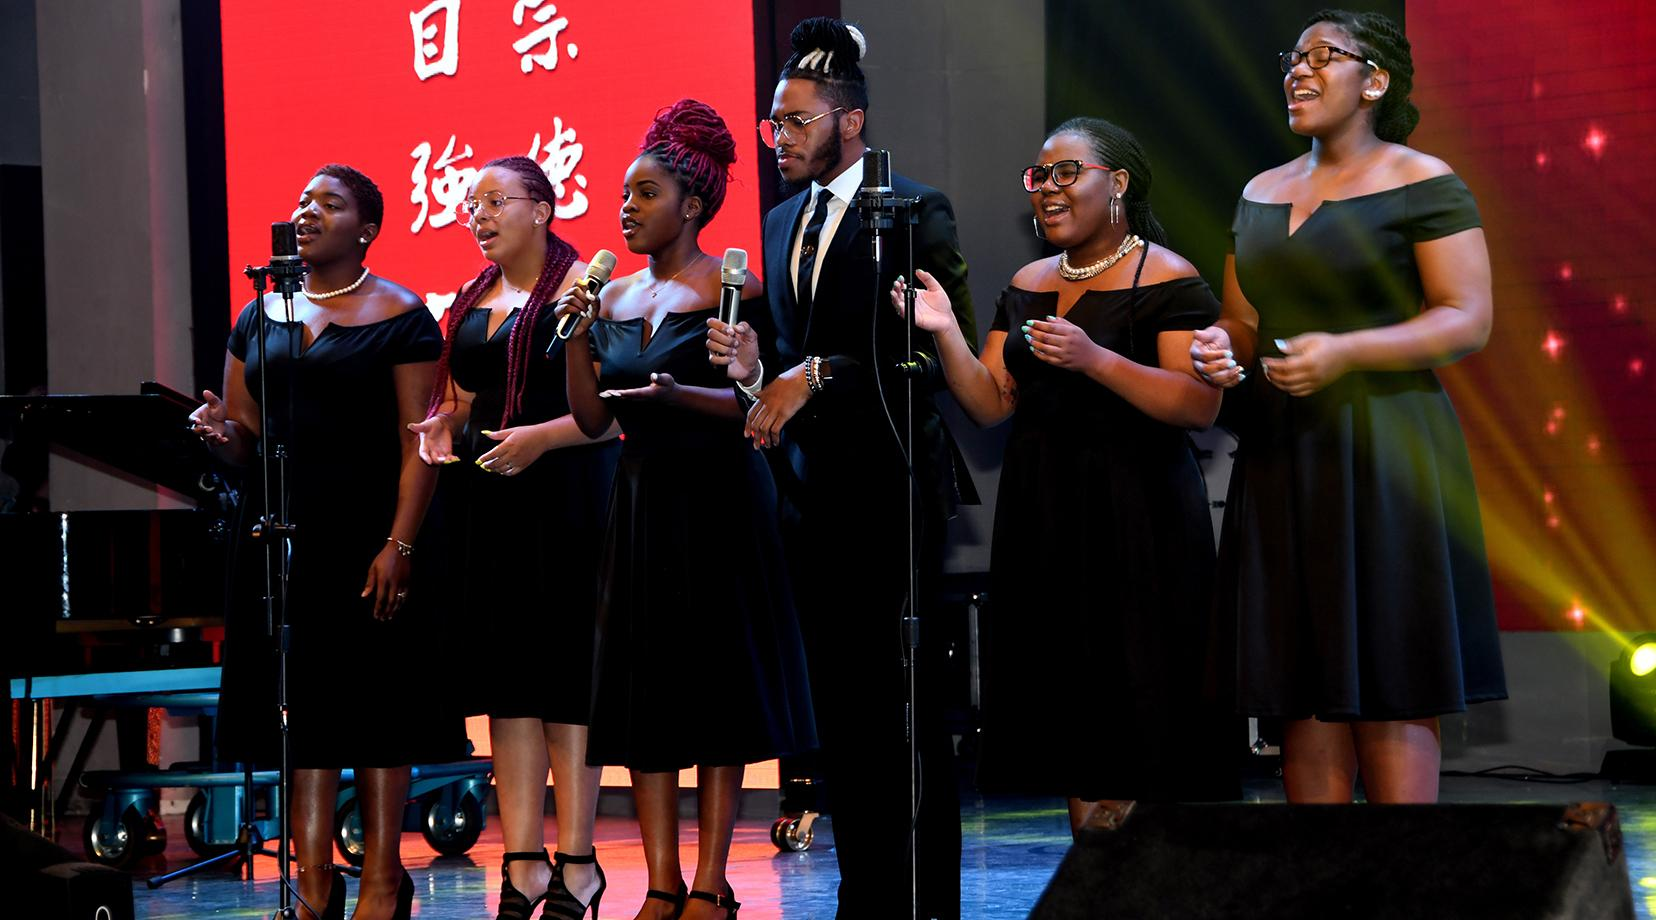 "<p>DSU Gospel Choir members Kiyah Mewborn, Shaé Ross, Ashlyn Moore, Darrell Miller, Niraha Traylor and Jevana Lambert give a powerful performance of the song ""My God is an Awesome God."" Not pictured are pianist Manuel Scott and drummer Nasir Carter Stokes.</p>"